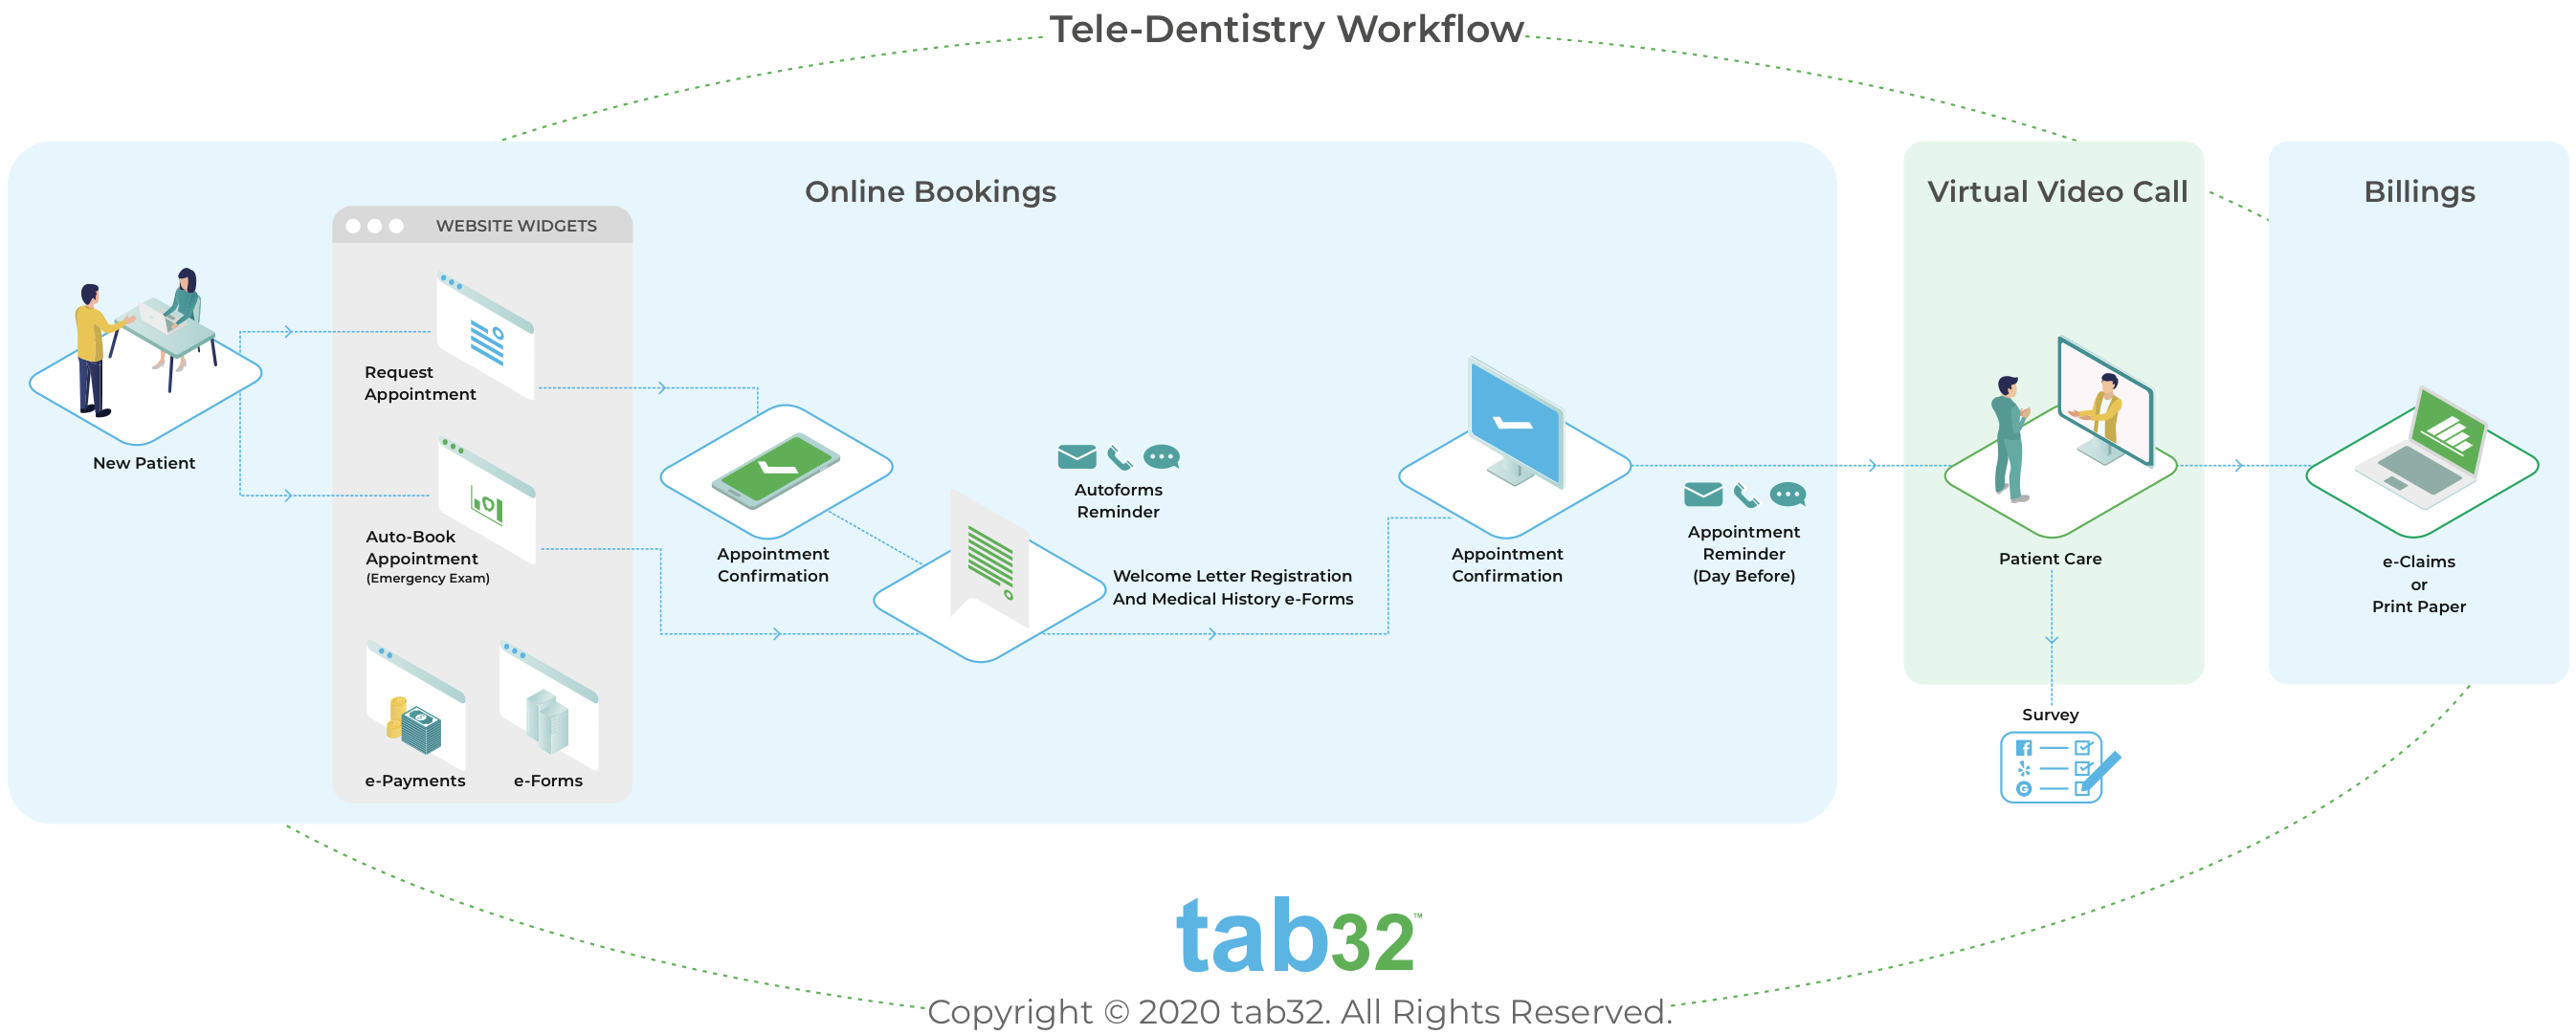 Tele-dentistry Workflow